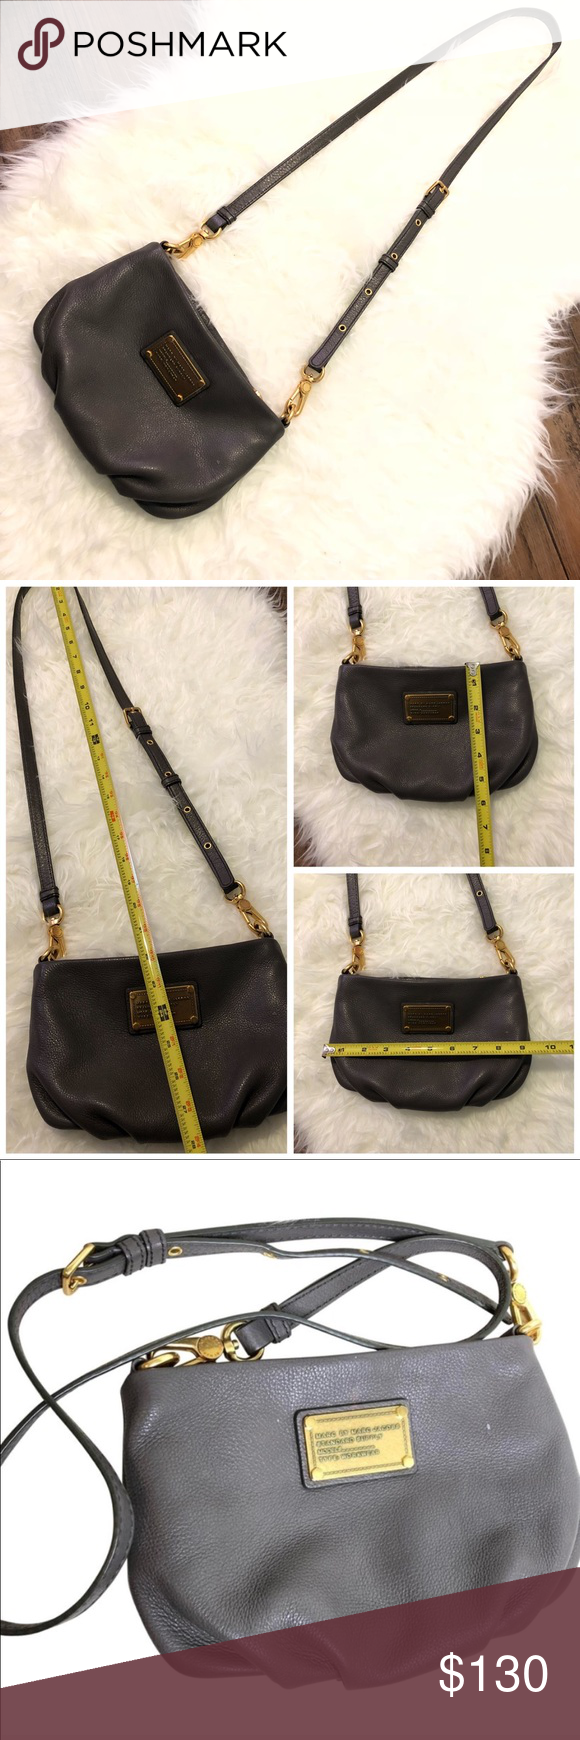 3241caed6e89 Authentic Marc Jacobs Sling bag Selling gently used Marc Jacobs bag in gray  with gold detail very gorgeous soft leather. Marc Jacobs Bags Crossbody Bags